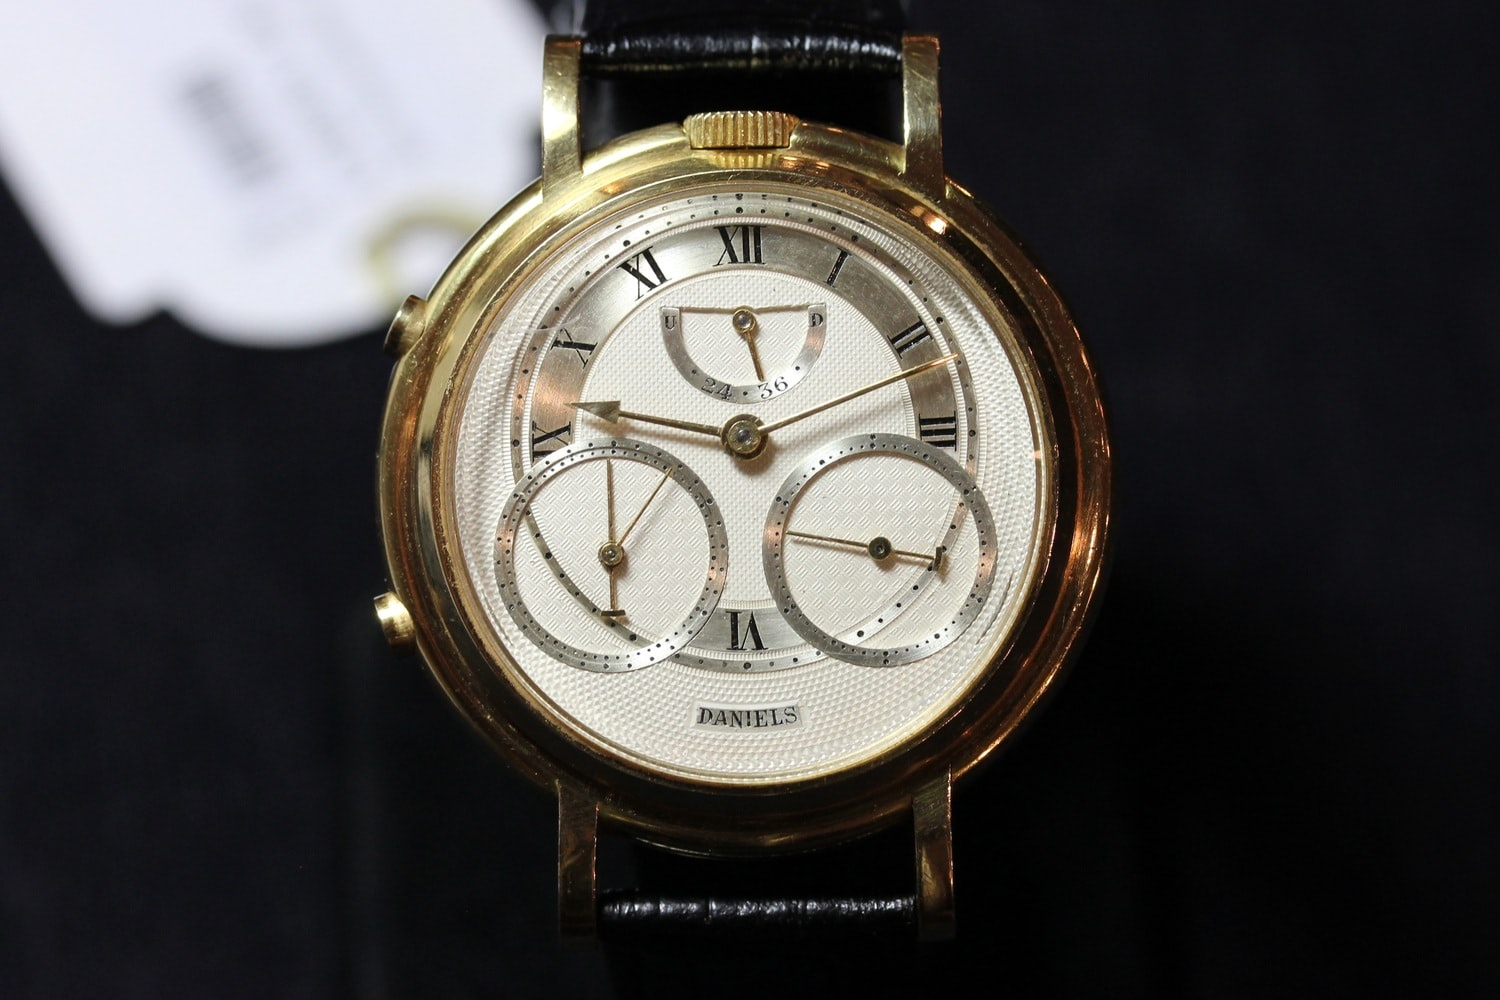 The George Daniels Co-Axial Chronograph wristwatch. Interview: Watches Of The Post-Quartz Era That Would Make It Into A Horological Museum, 500 Years From Now, According To Stephen Forsey Interview: Watches Of The Post-Quartz Era That Would Make It Into A Horological Museum, 500 Years From Now, According To Stephen Forsey GD Preview223